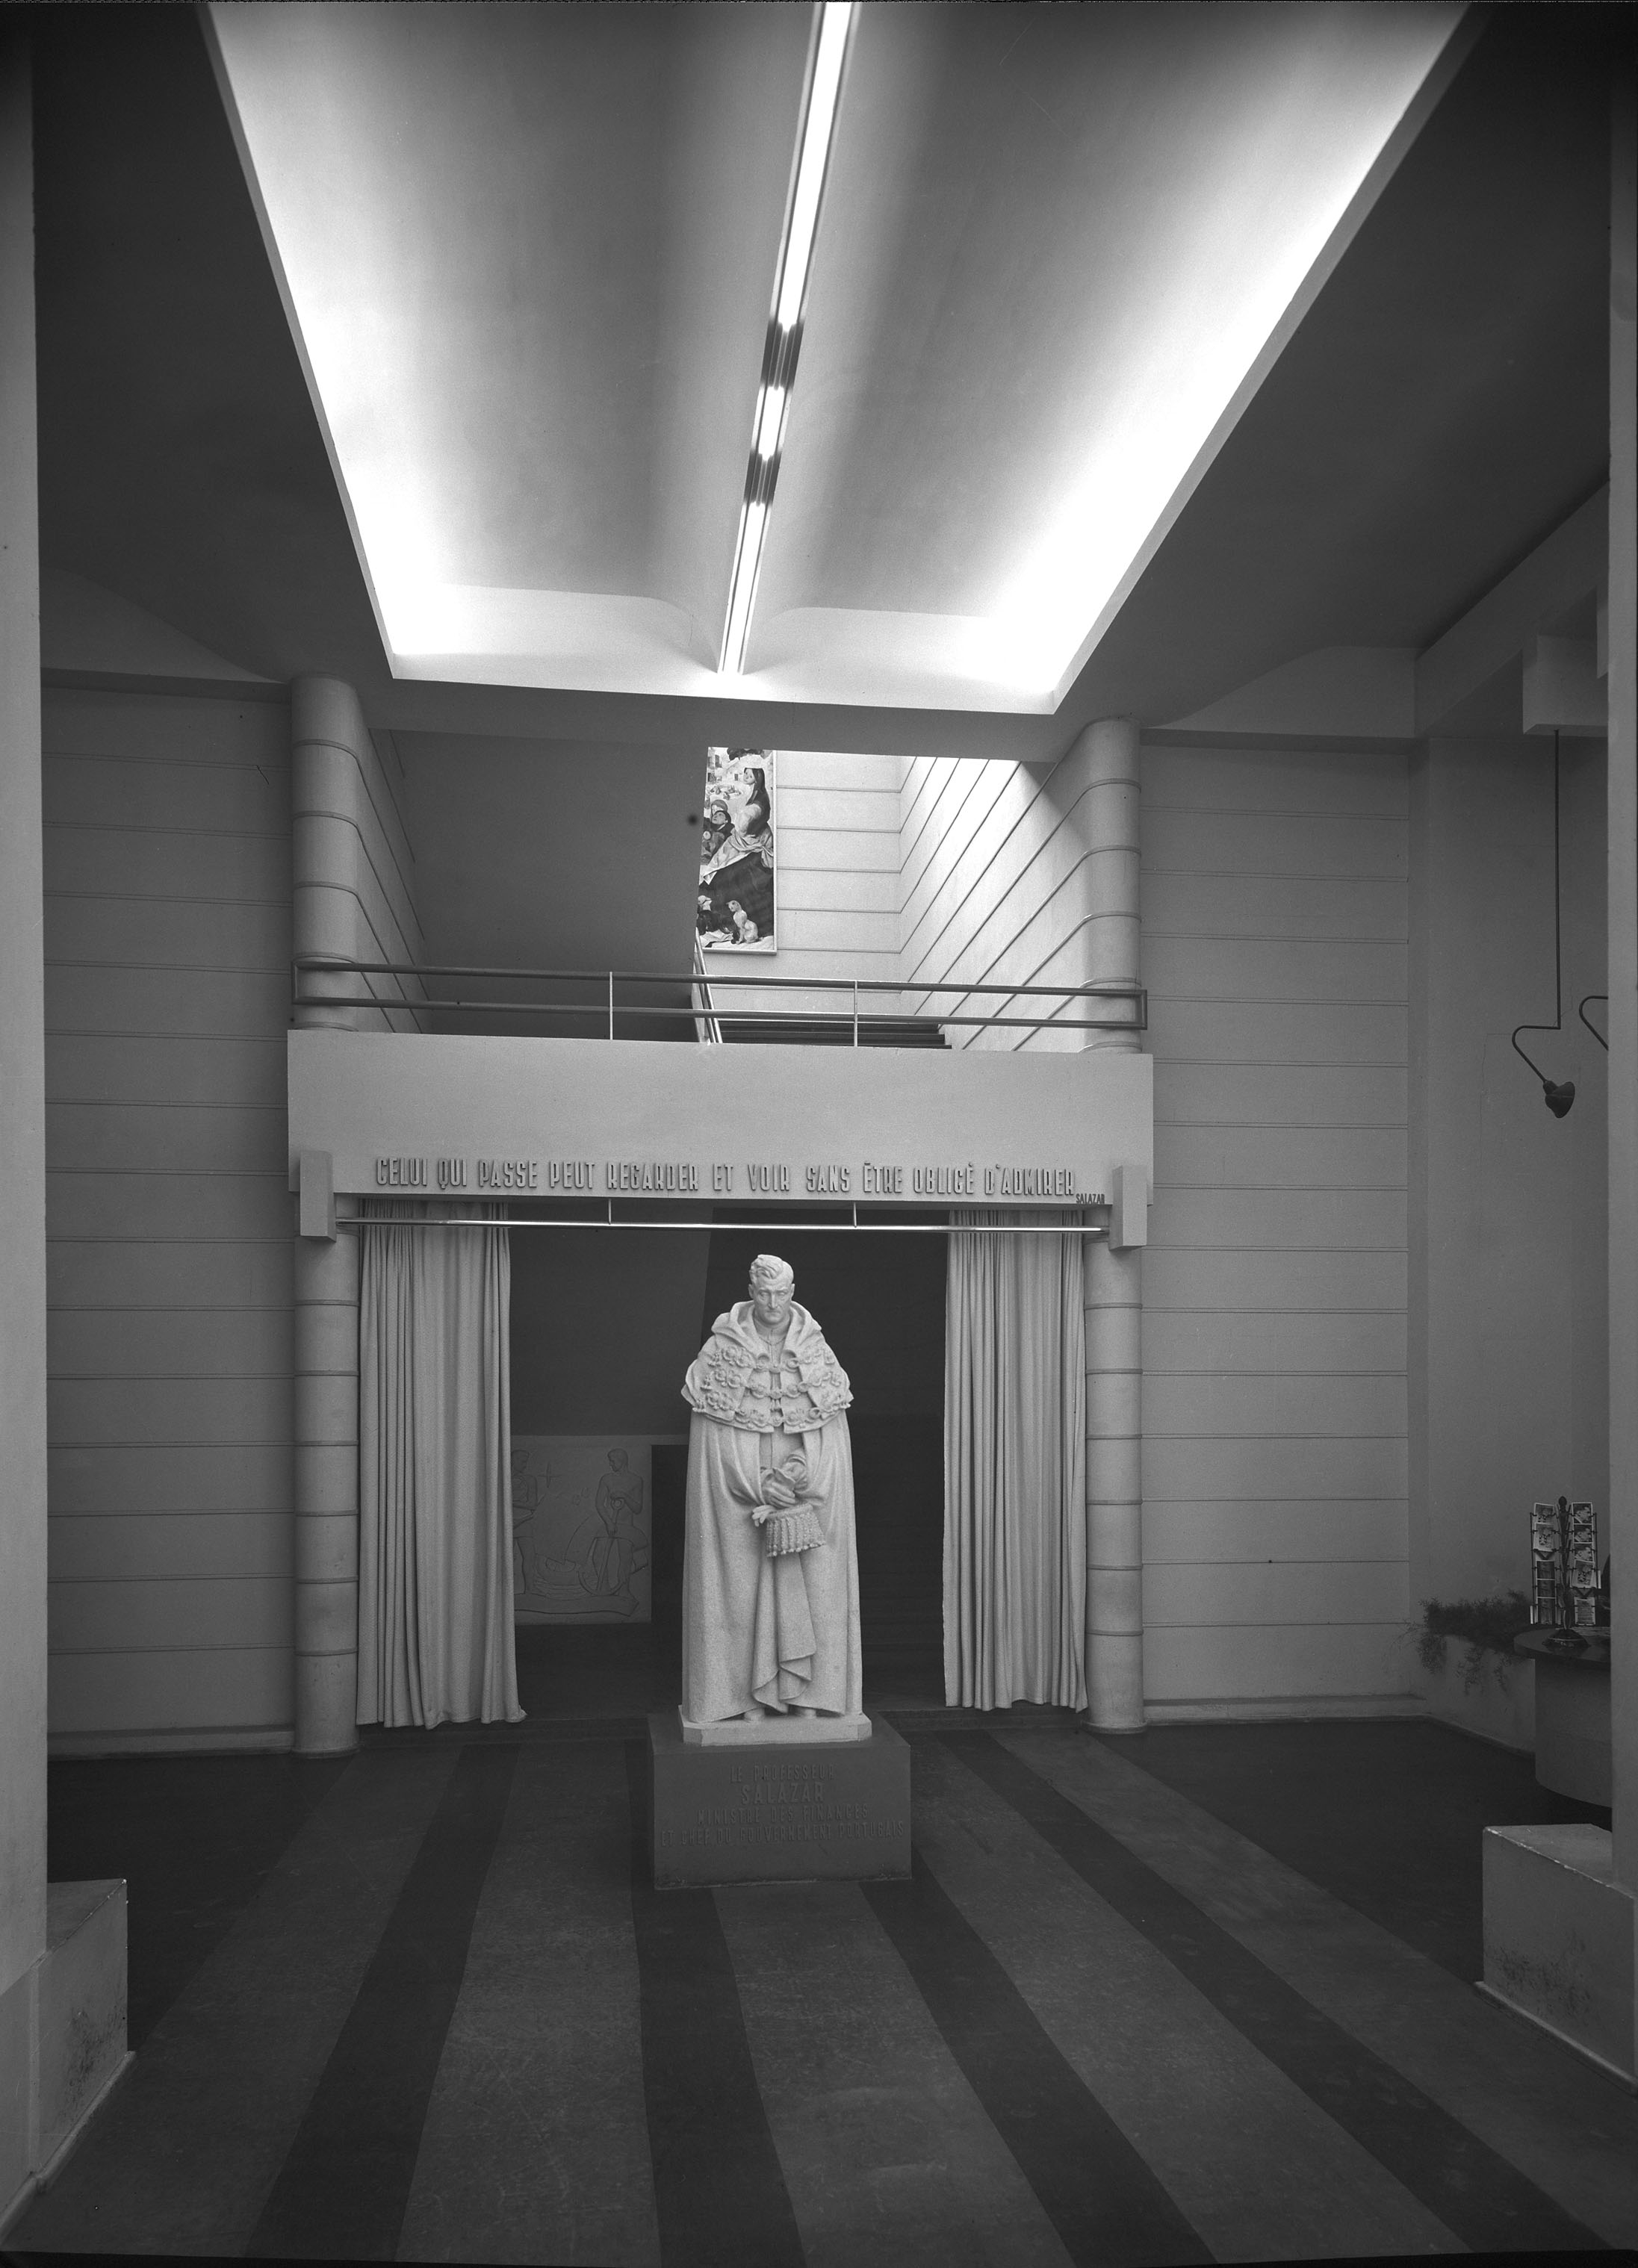 Salazar wears academic robes in this statue by Francisco Franco, exhibited in the main foyer of the Portugal Pavilion, Paris International Exhibition, 1937. It was also displayed at the 1940 Exposition of the Portuguese-Speaking World in tandem with a statue of Óscar Carmona by Leopoldo de Almeida,  one of the architects of the Monument of Discoveries.  Photo: Mário Novais, 1937, Paris  Biblioteca de Arte da Fundação Calouste Gulbenkian [CFT003_102354]